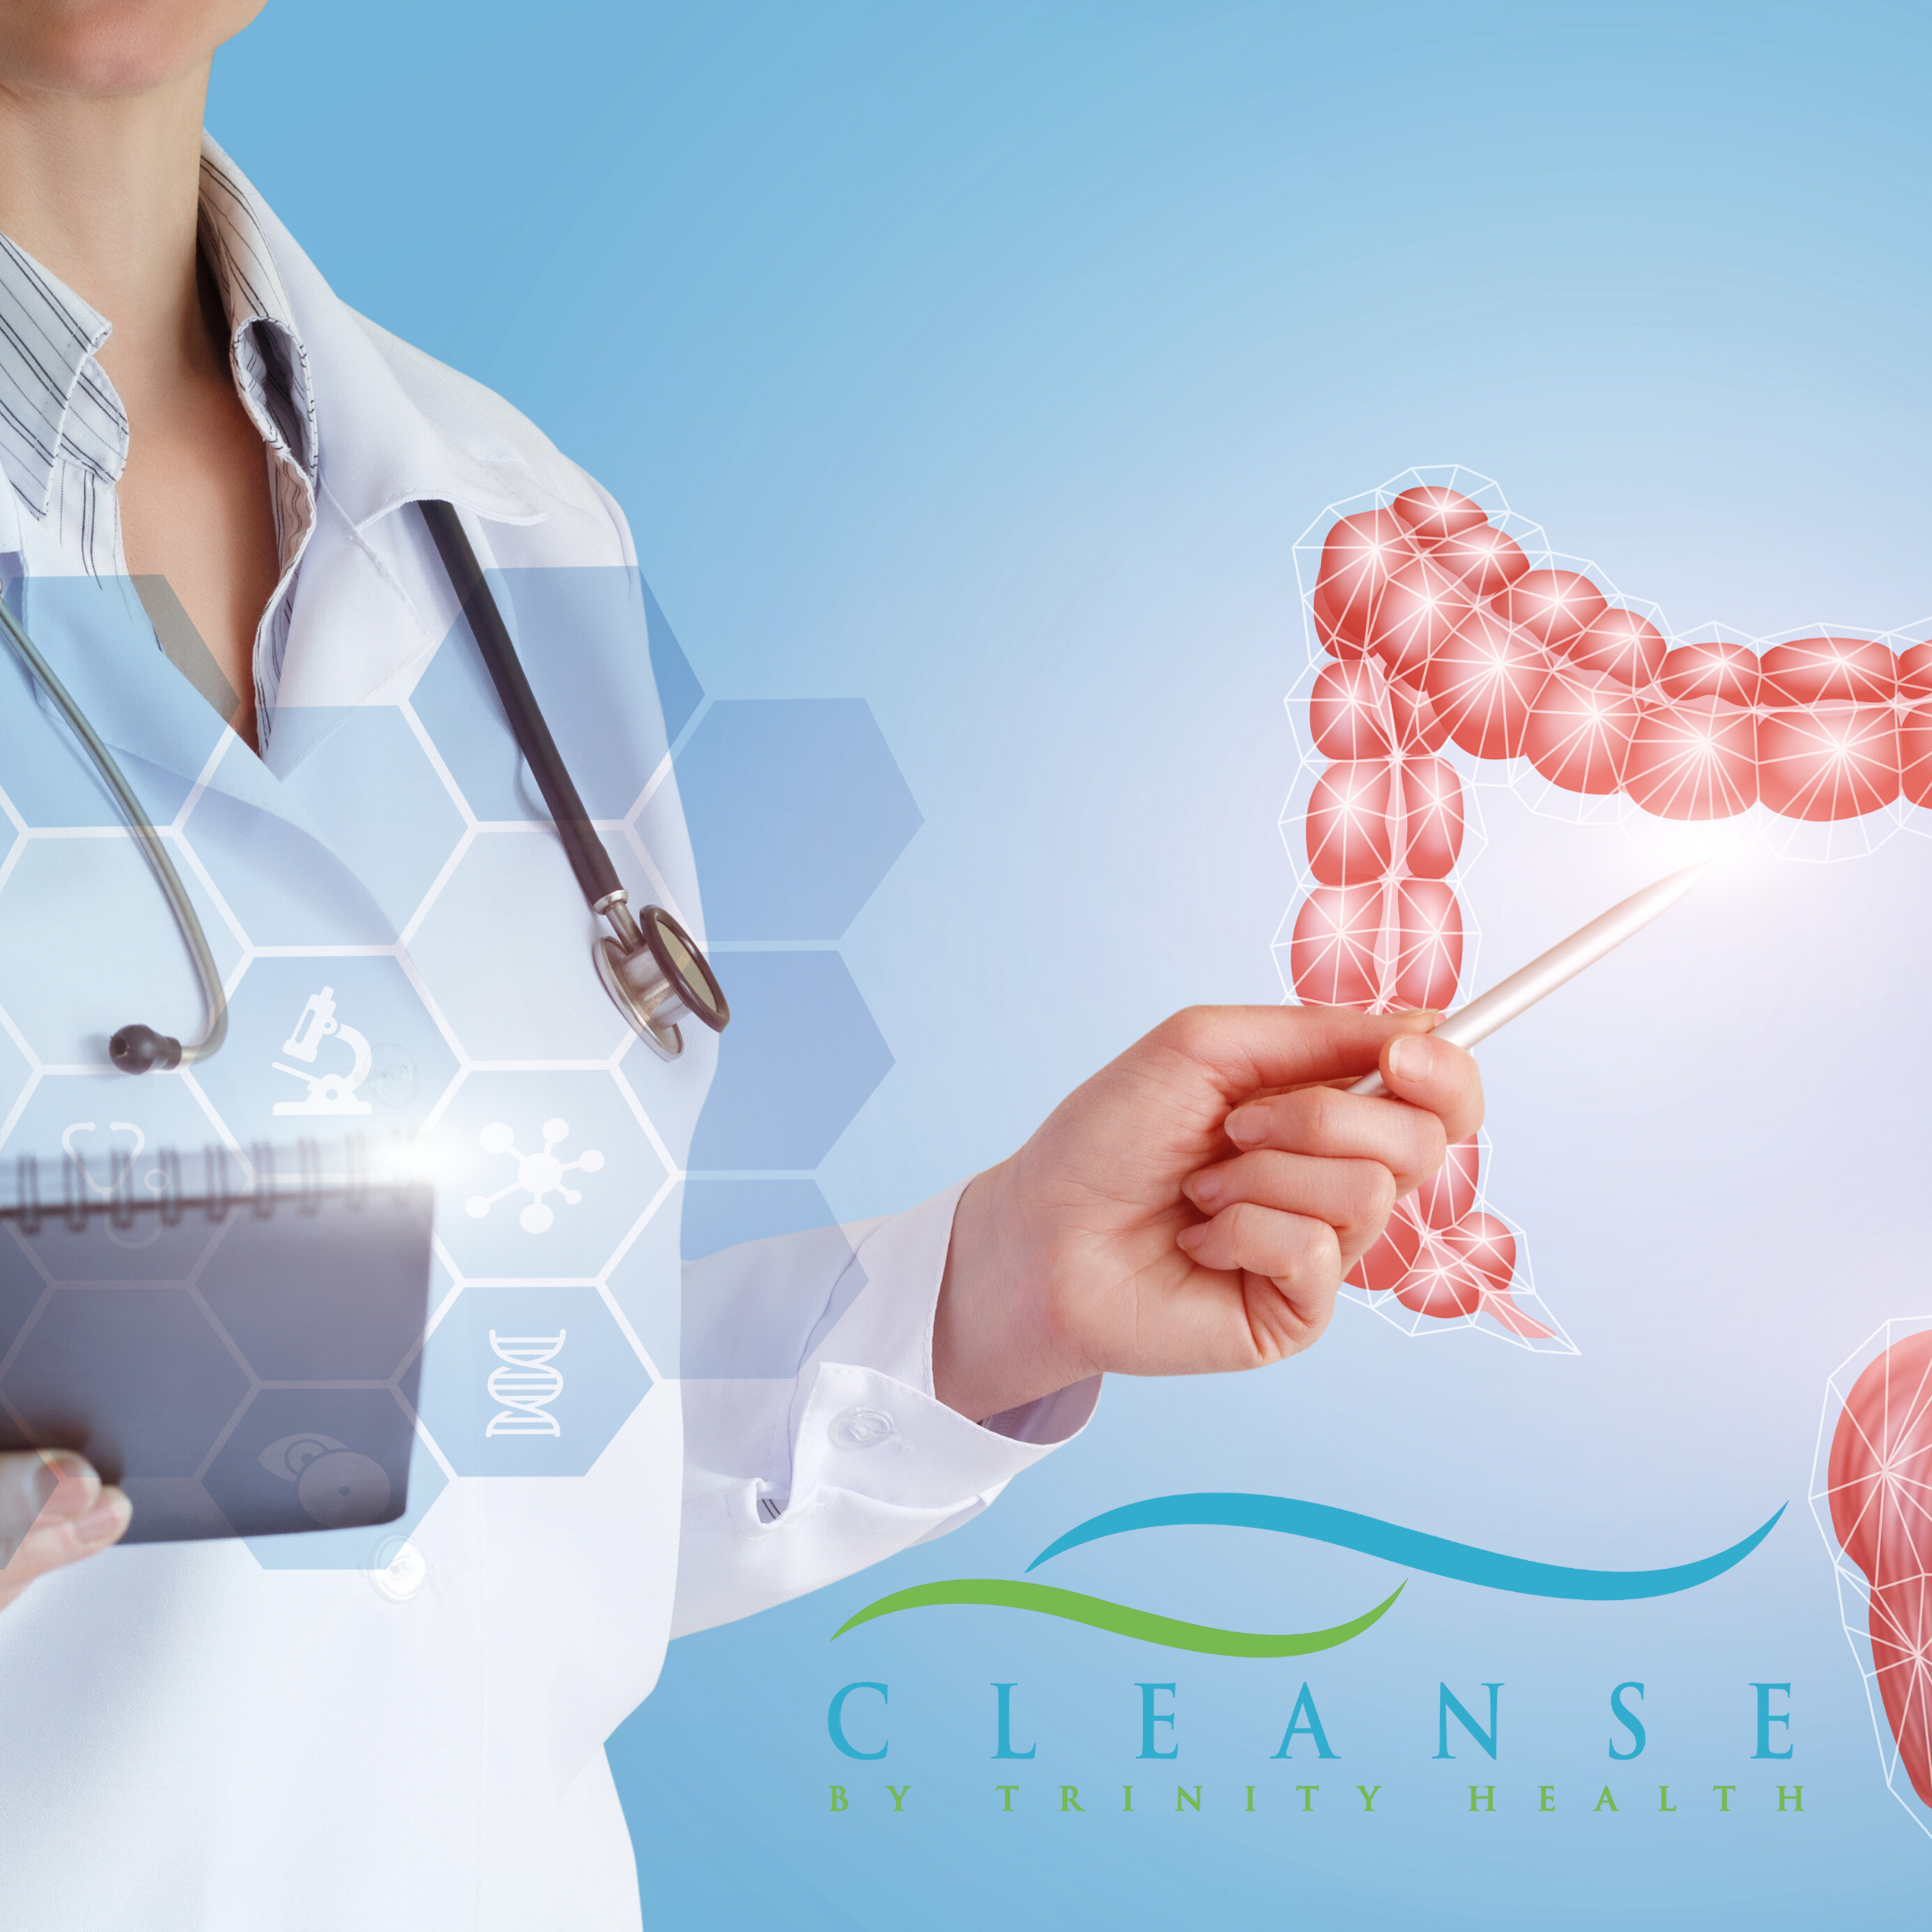 Colon Cleansing in Johannesburg South Africa